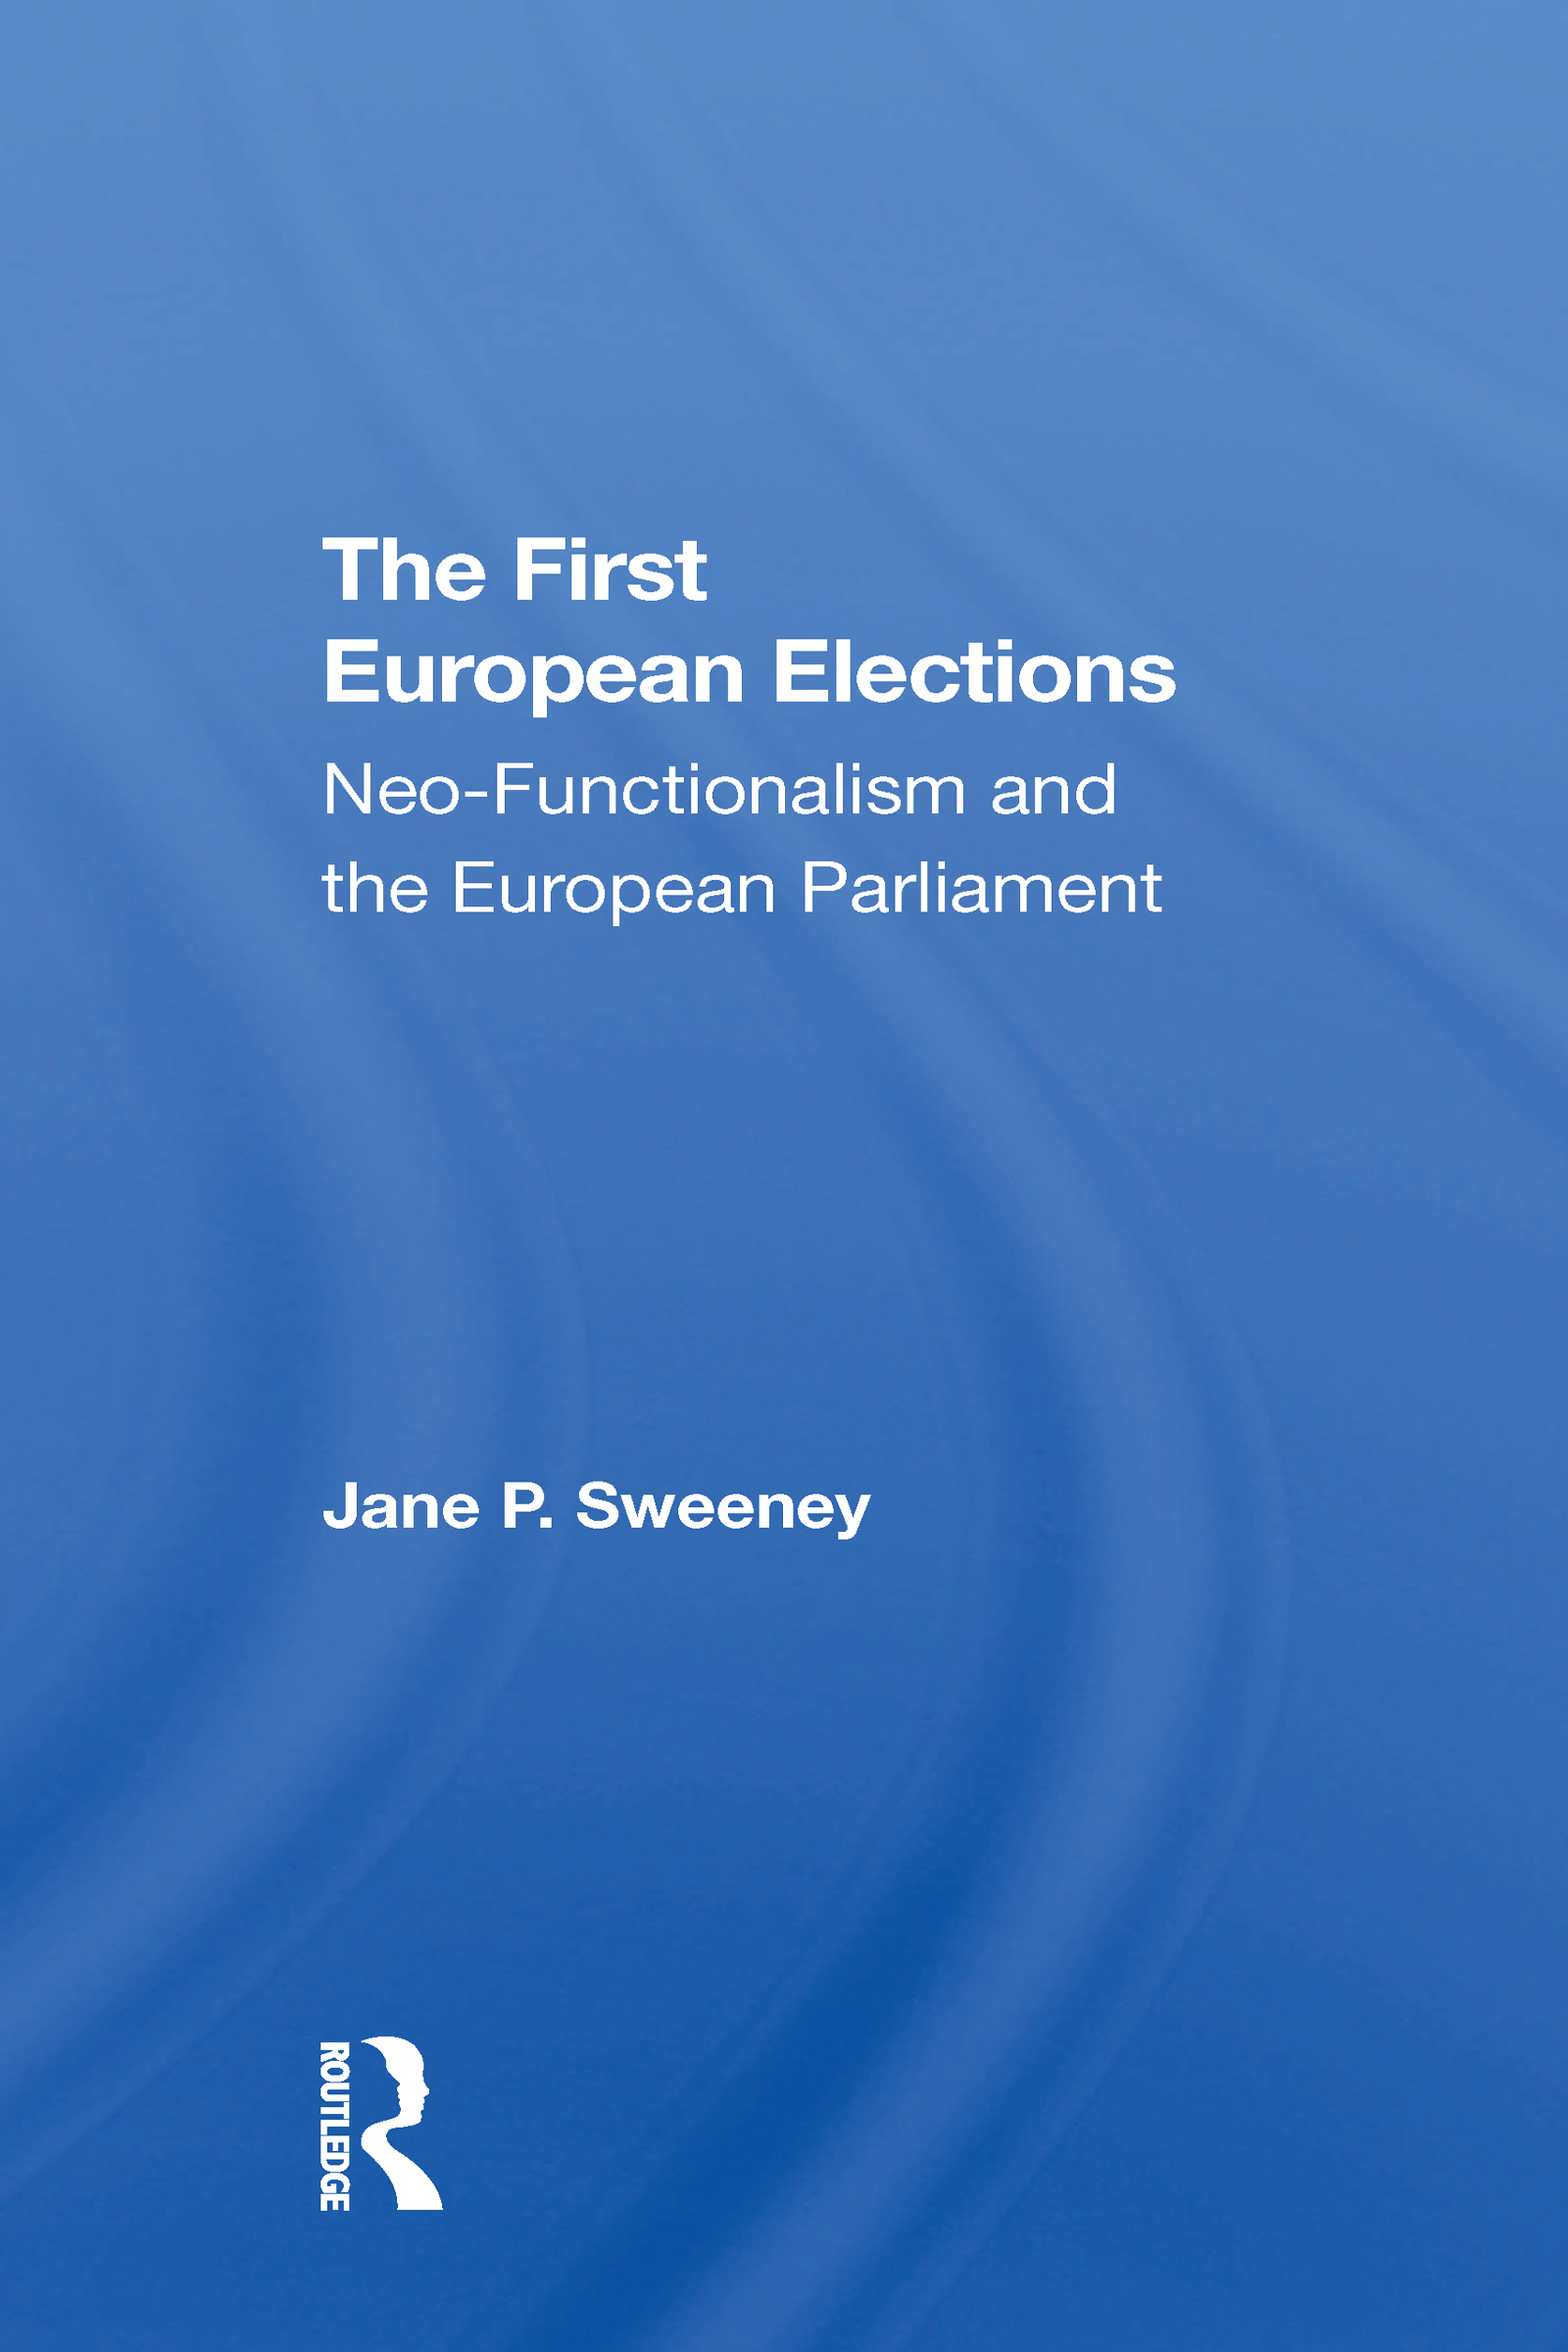 The First European Elections